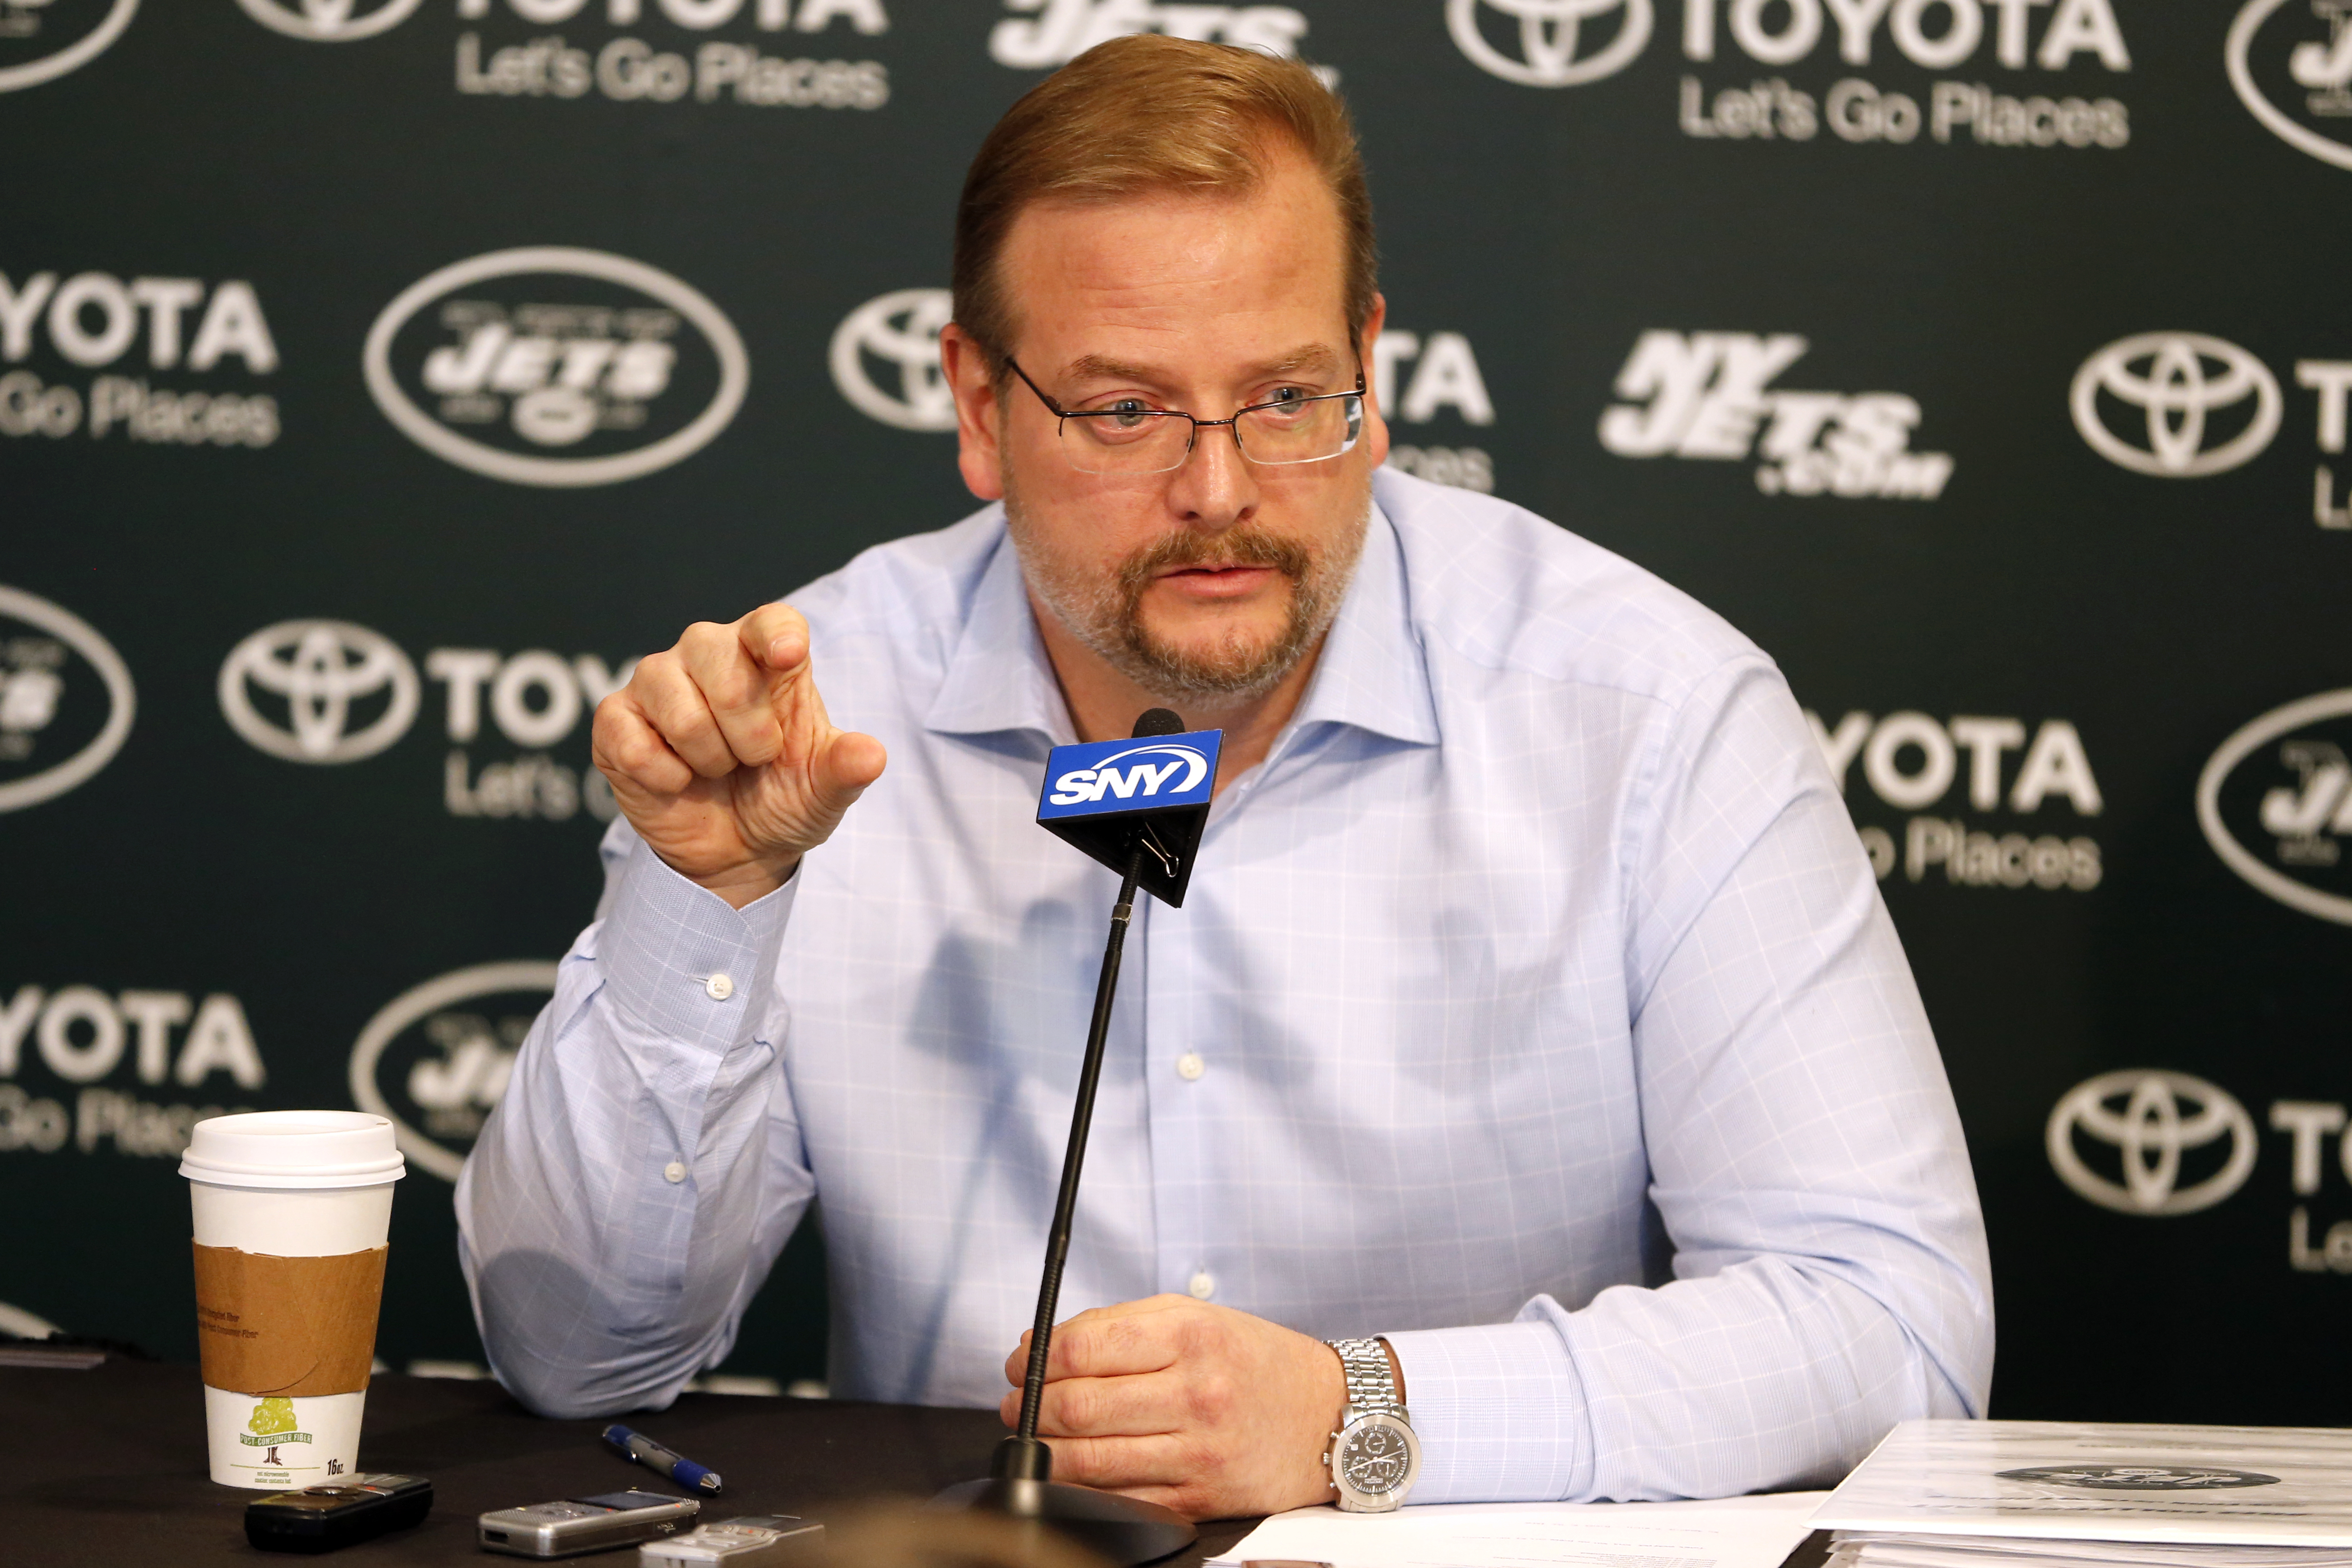 New York Jets general manager Mike Maccagnan speaks to reporters ahead of the NFL football draft, during a news conference, Friday, April 24, 2015, in Florham Park, N.J. (AP Photo/Julio Cortez)